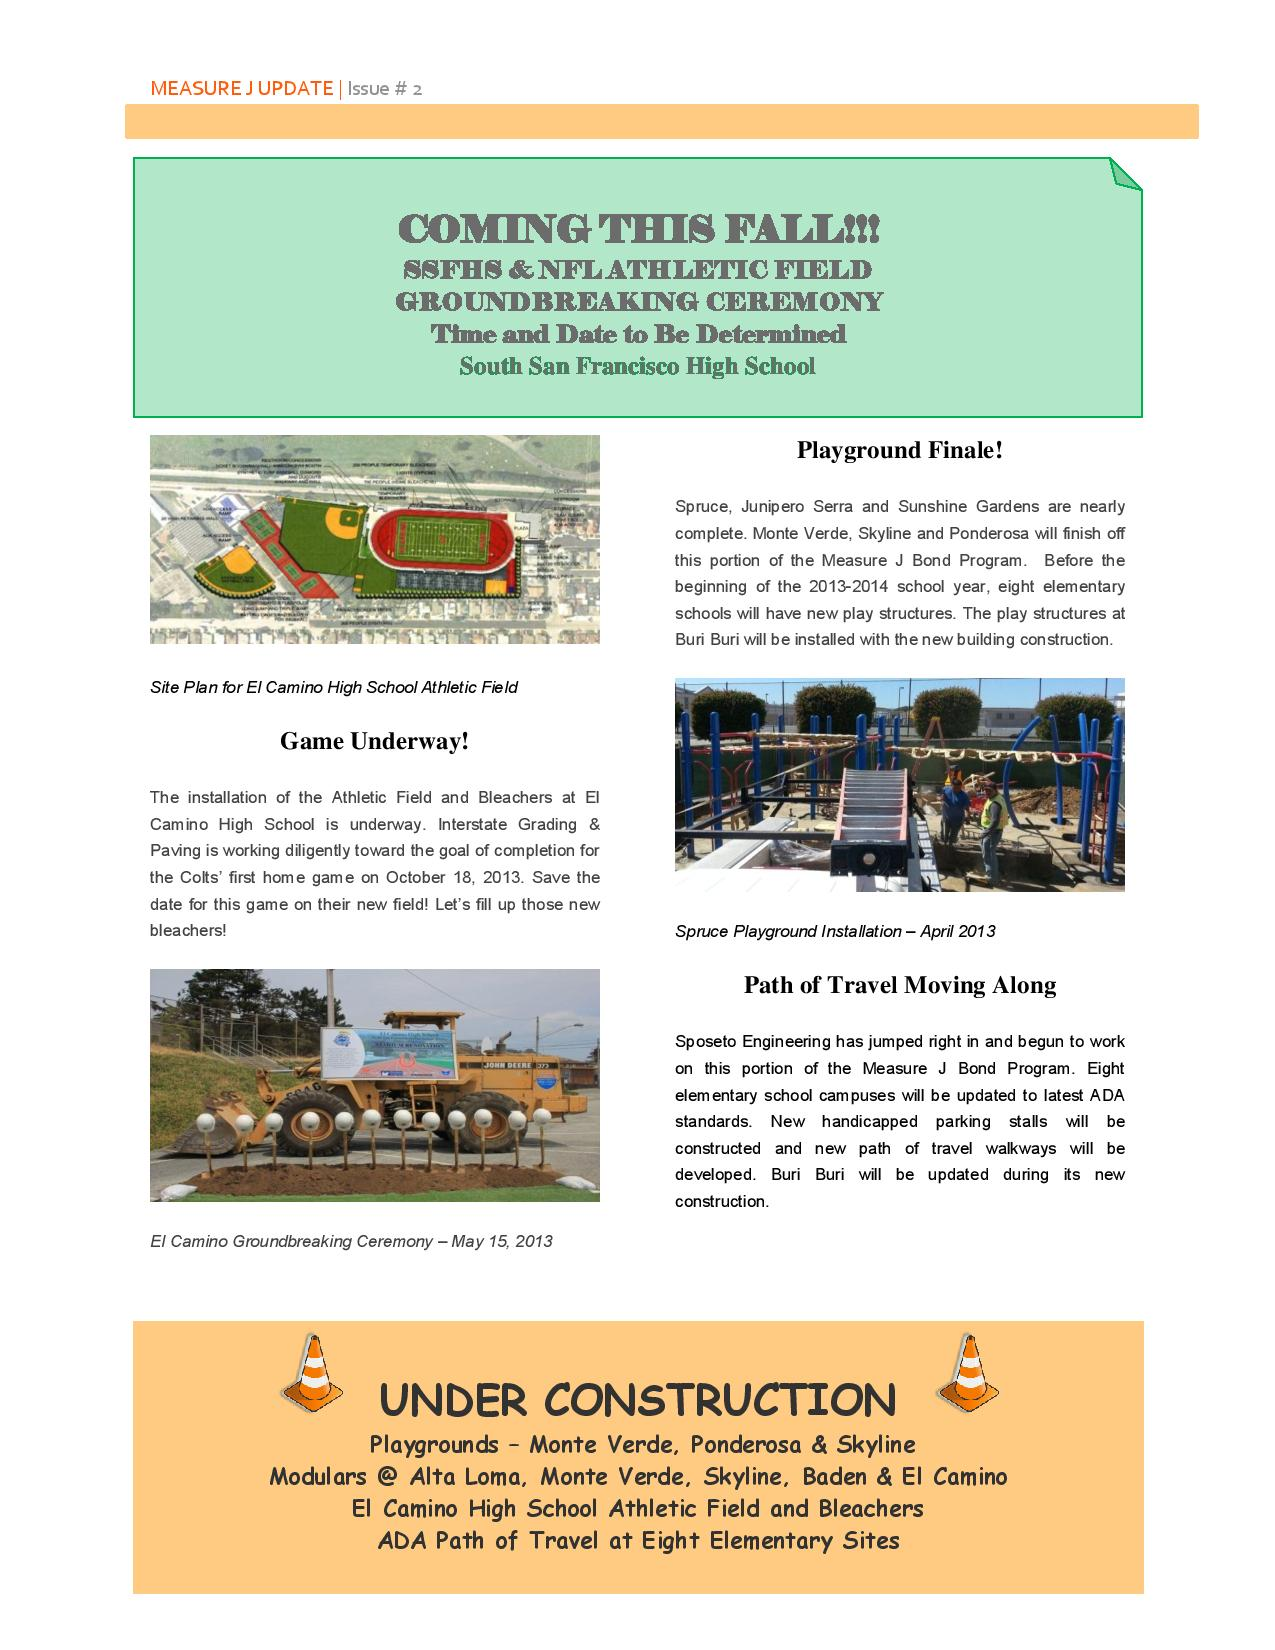 SSFUSD Measure J Newsletter #2 South San Francisco-page-002